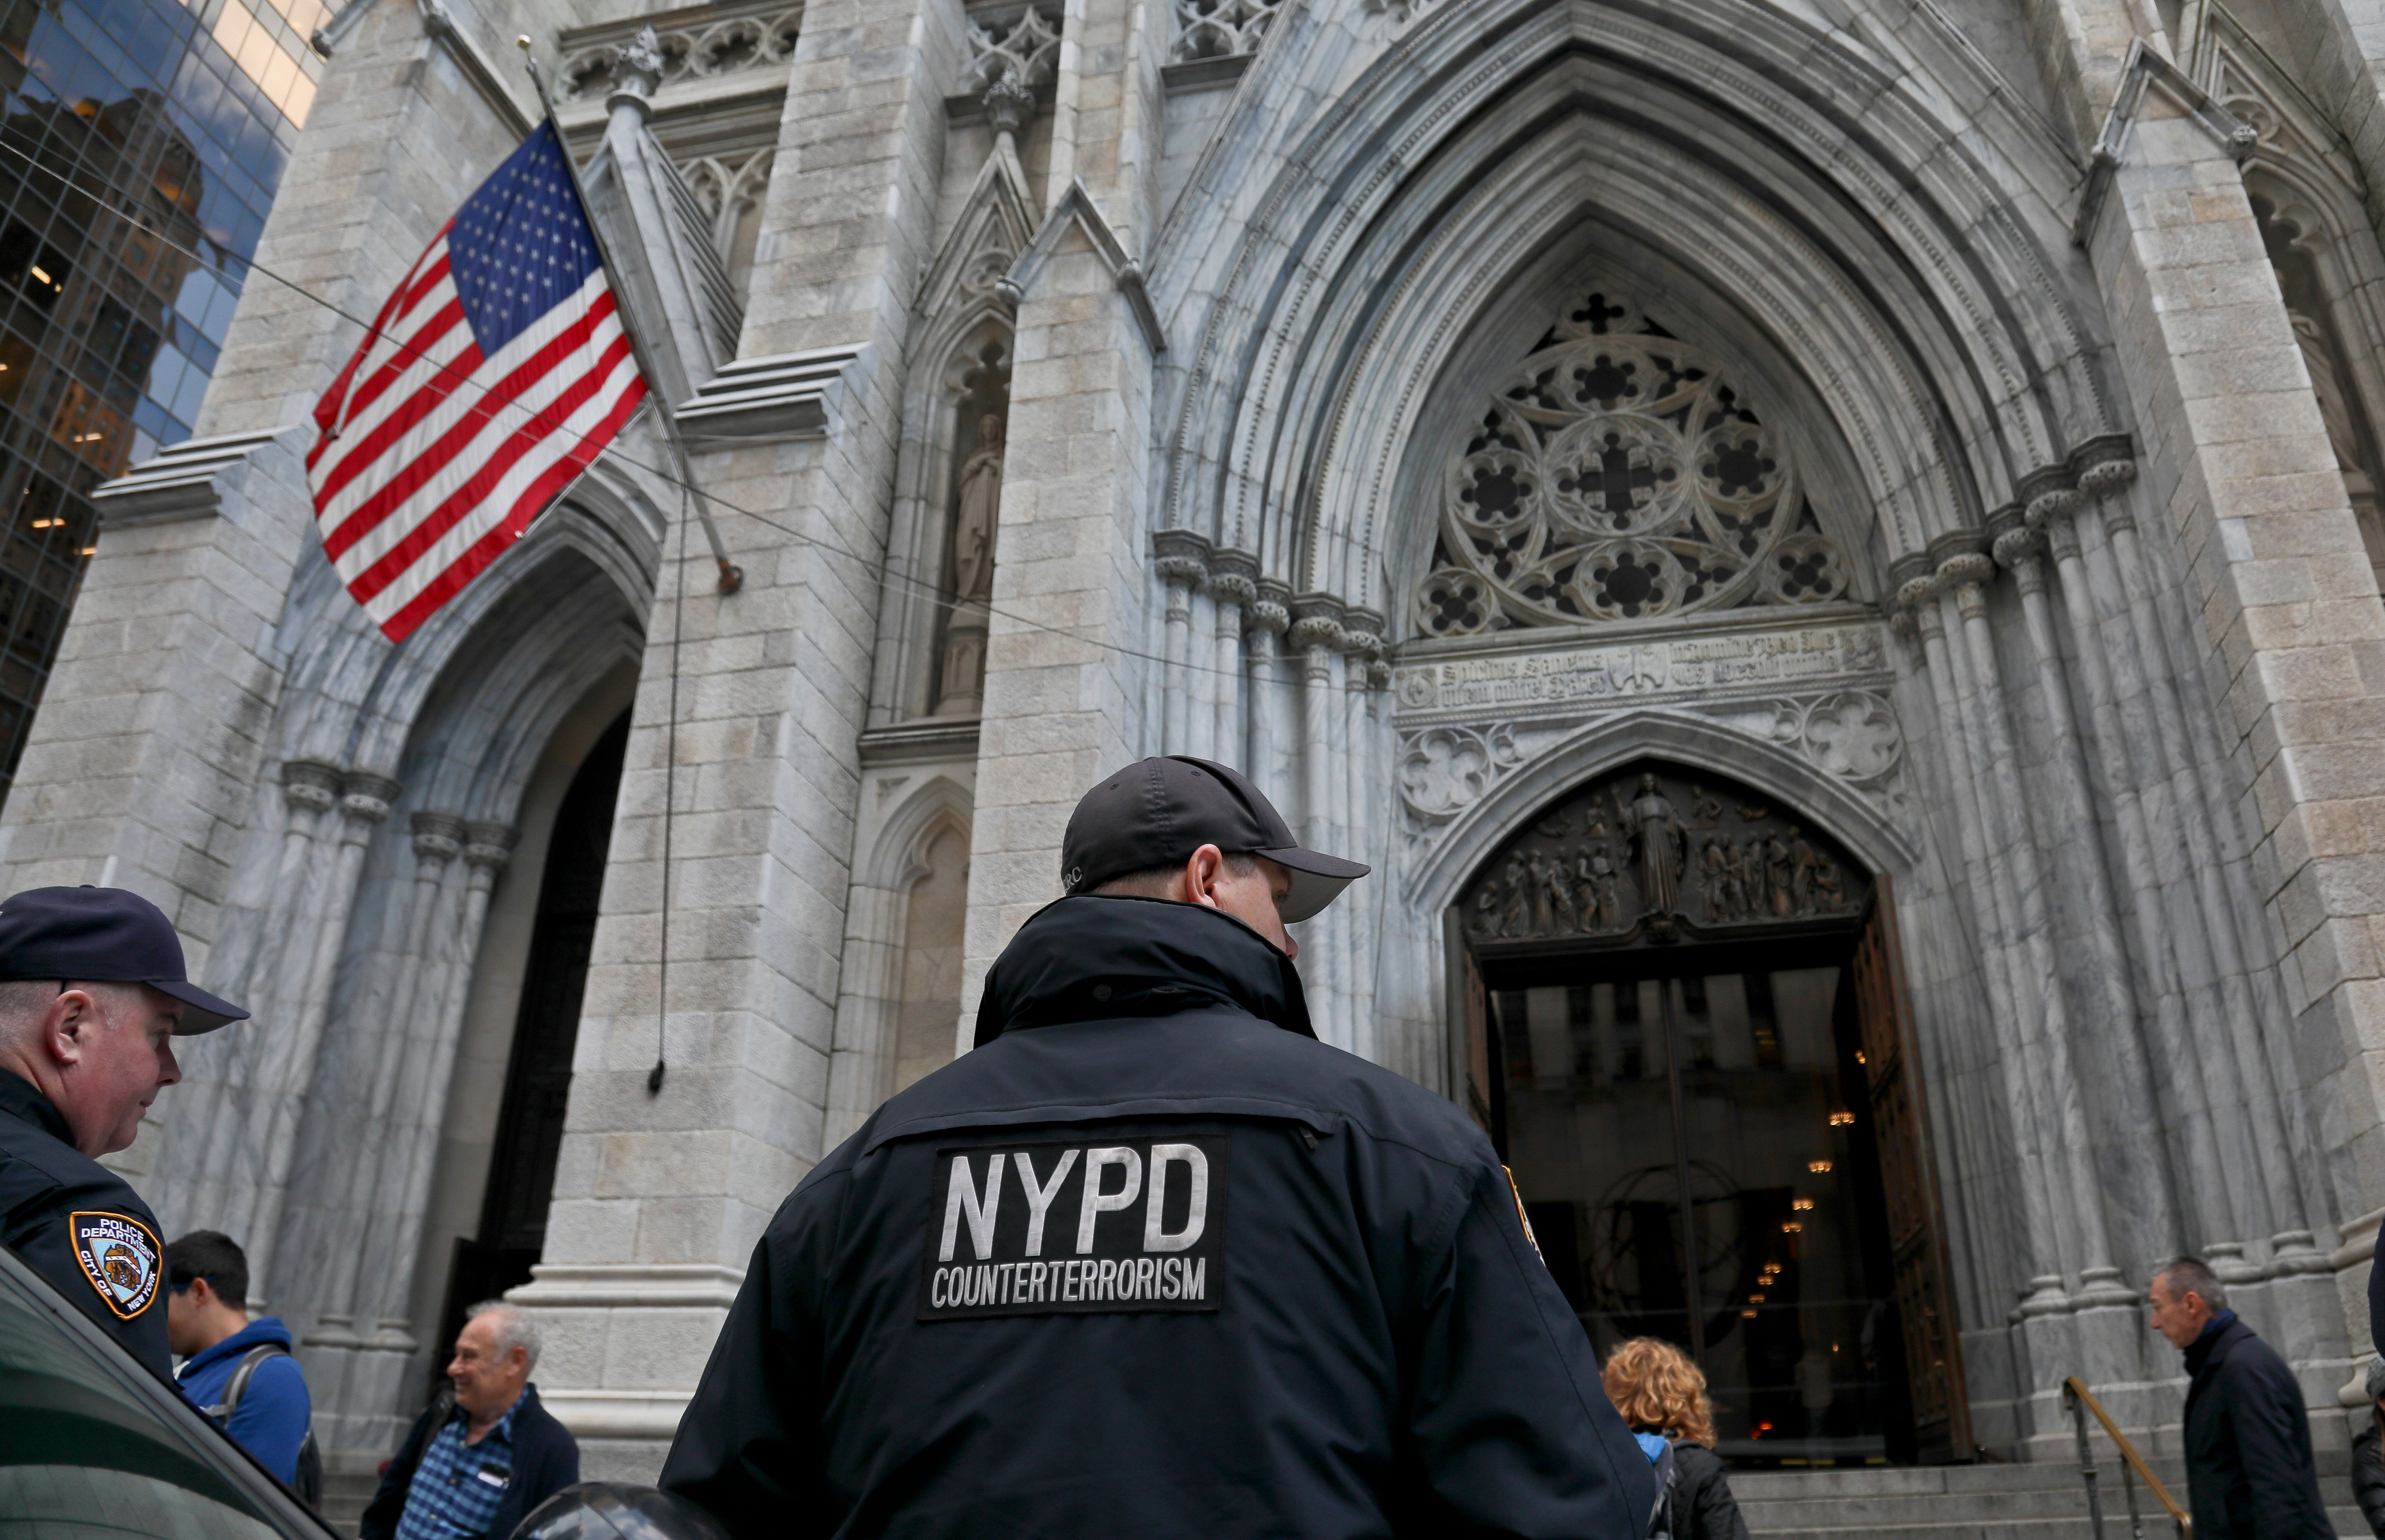 NYPD counterterrorism officers are stationed at St. Patrick's Cathedral, as religious institutions boost security in the aftermath of Pittsburgh's Synagogue shooting, Monday Oct. 29, 2018, in New York. (AP Photo/Bebeto Matthews)